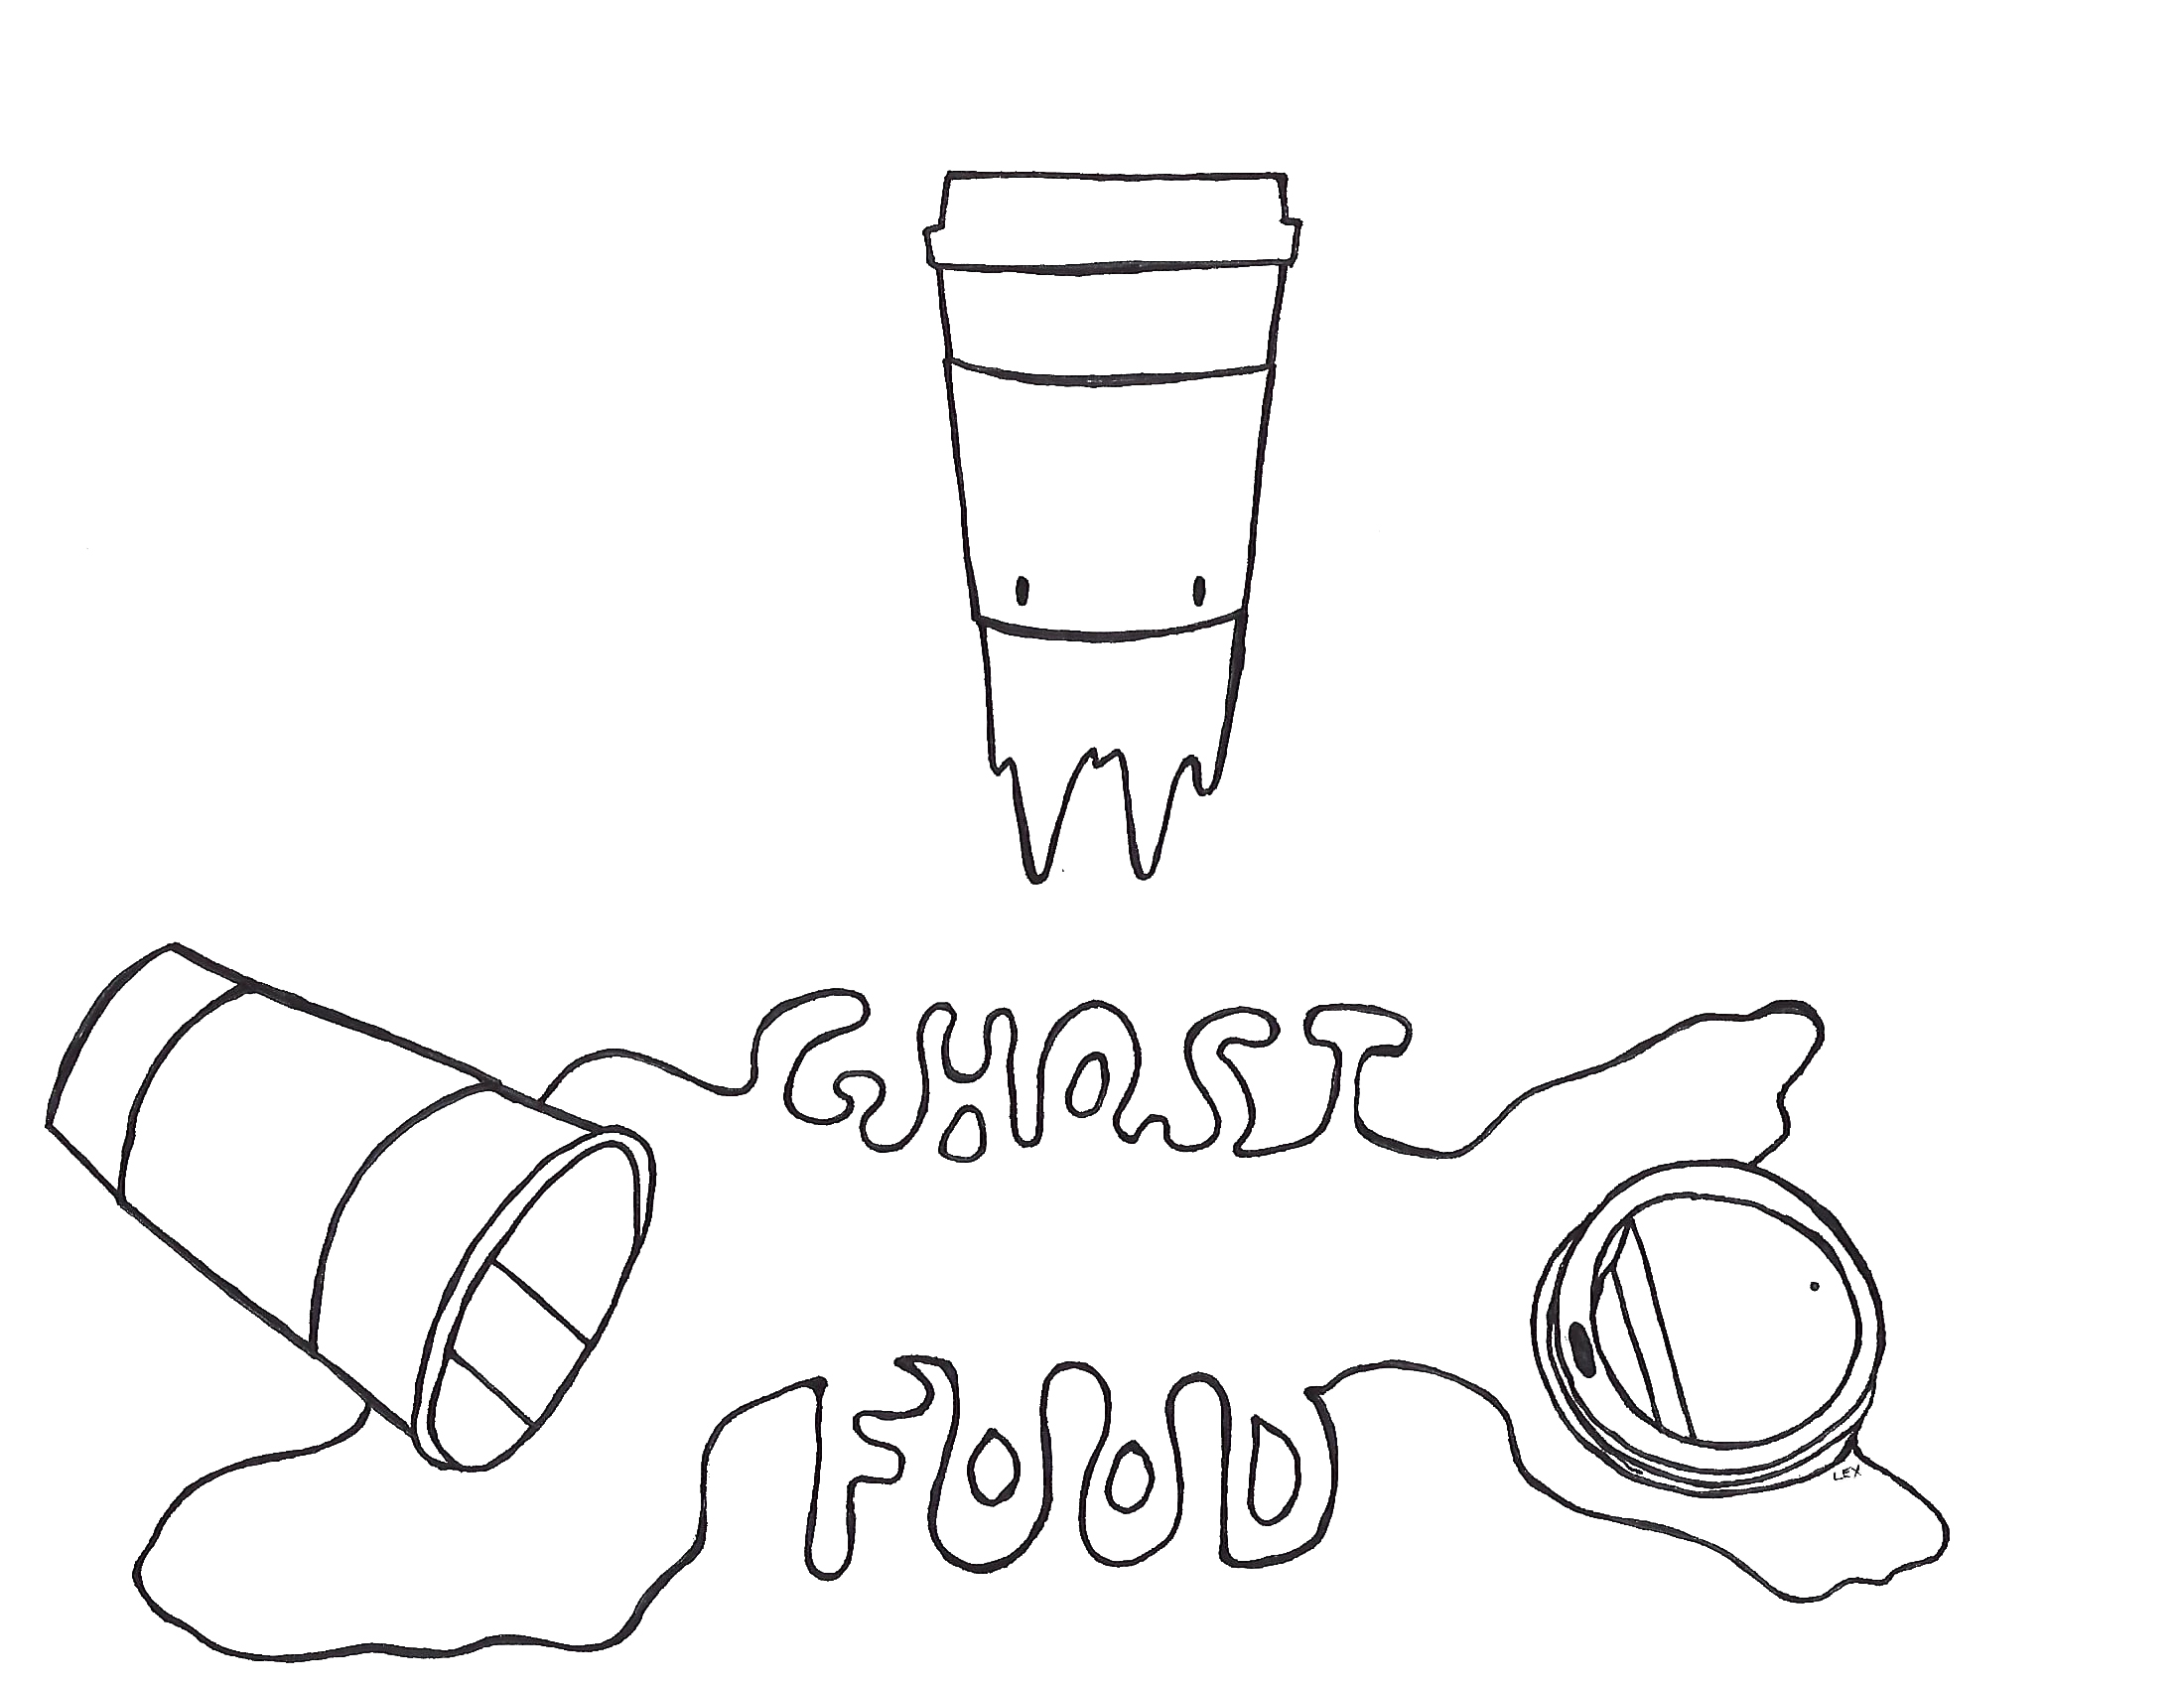 Ghost Food logo_clean.jpg